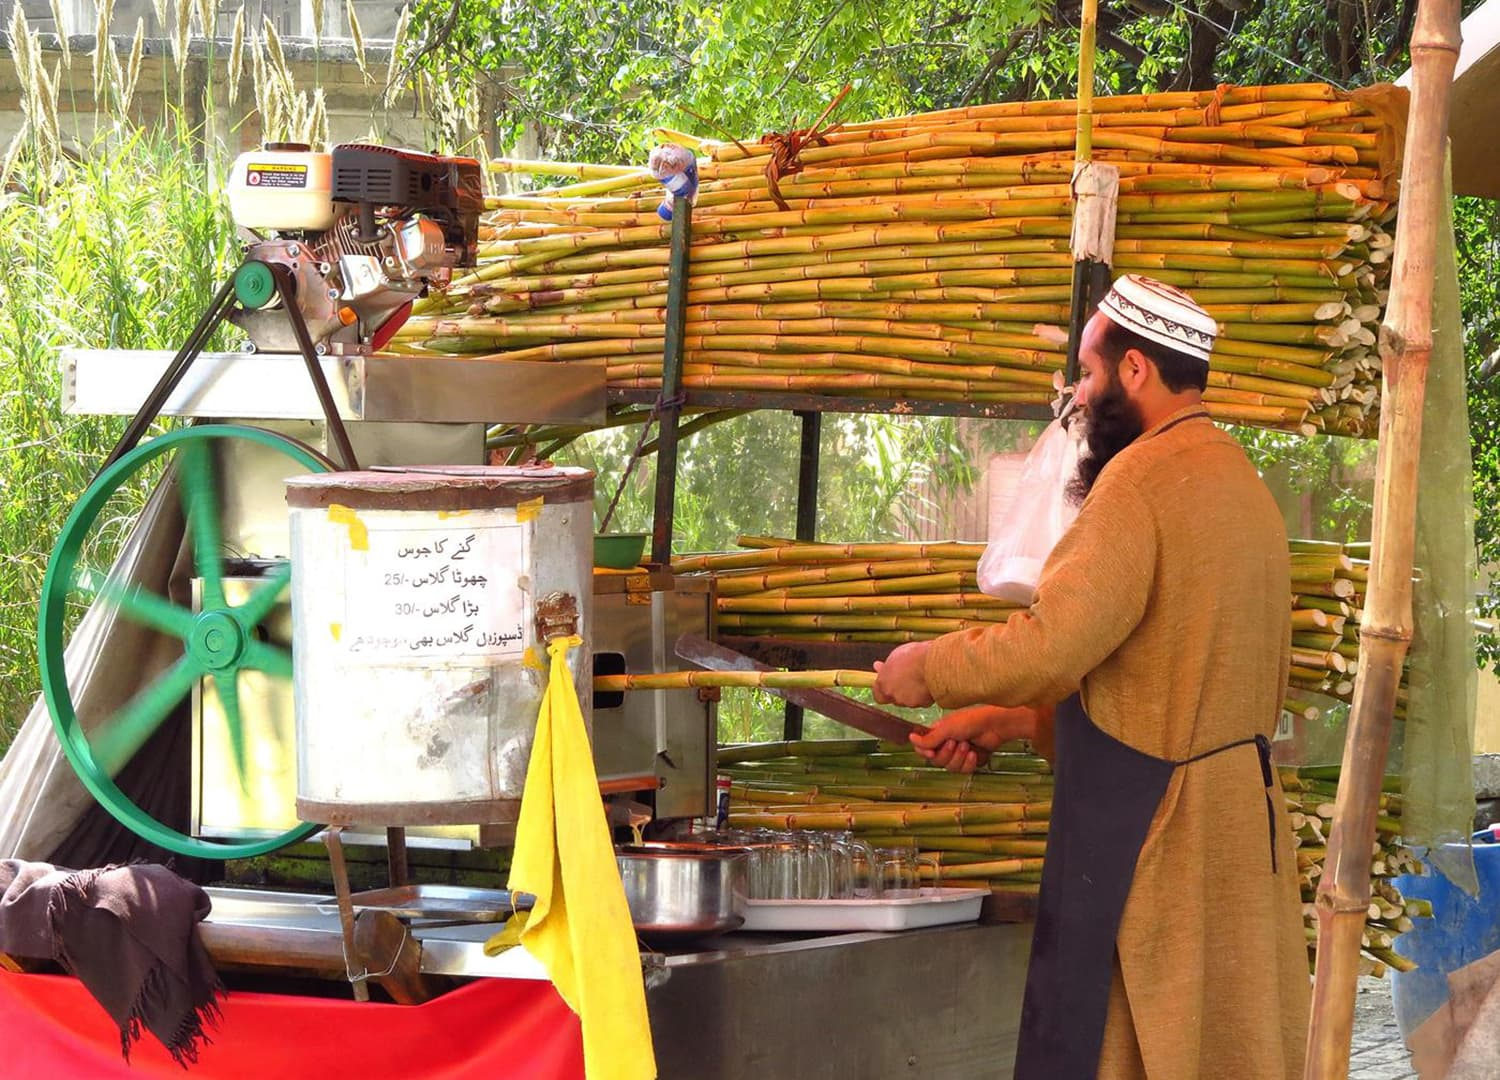 A sugarcane juice vendor in Islamabad.